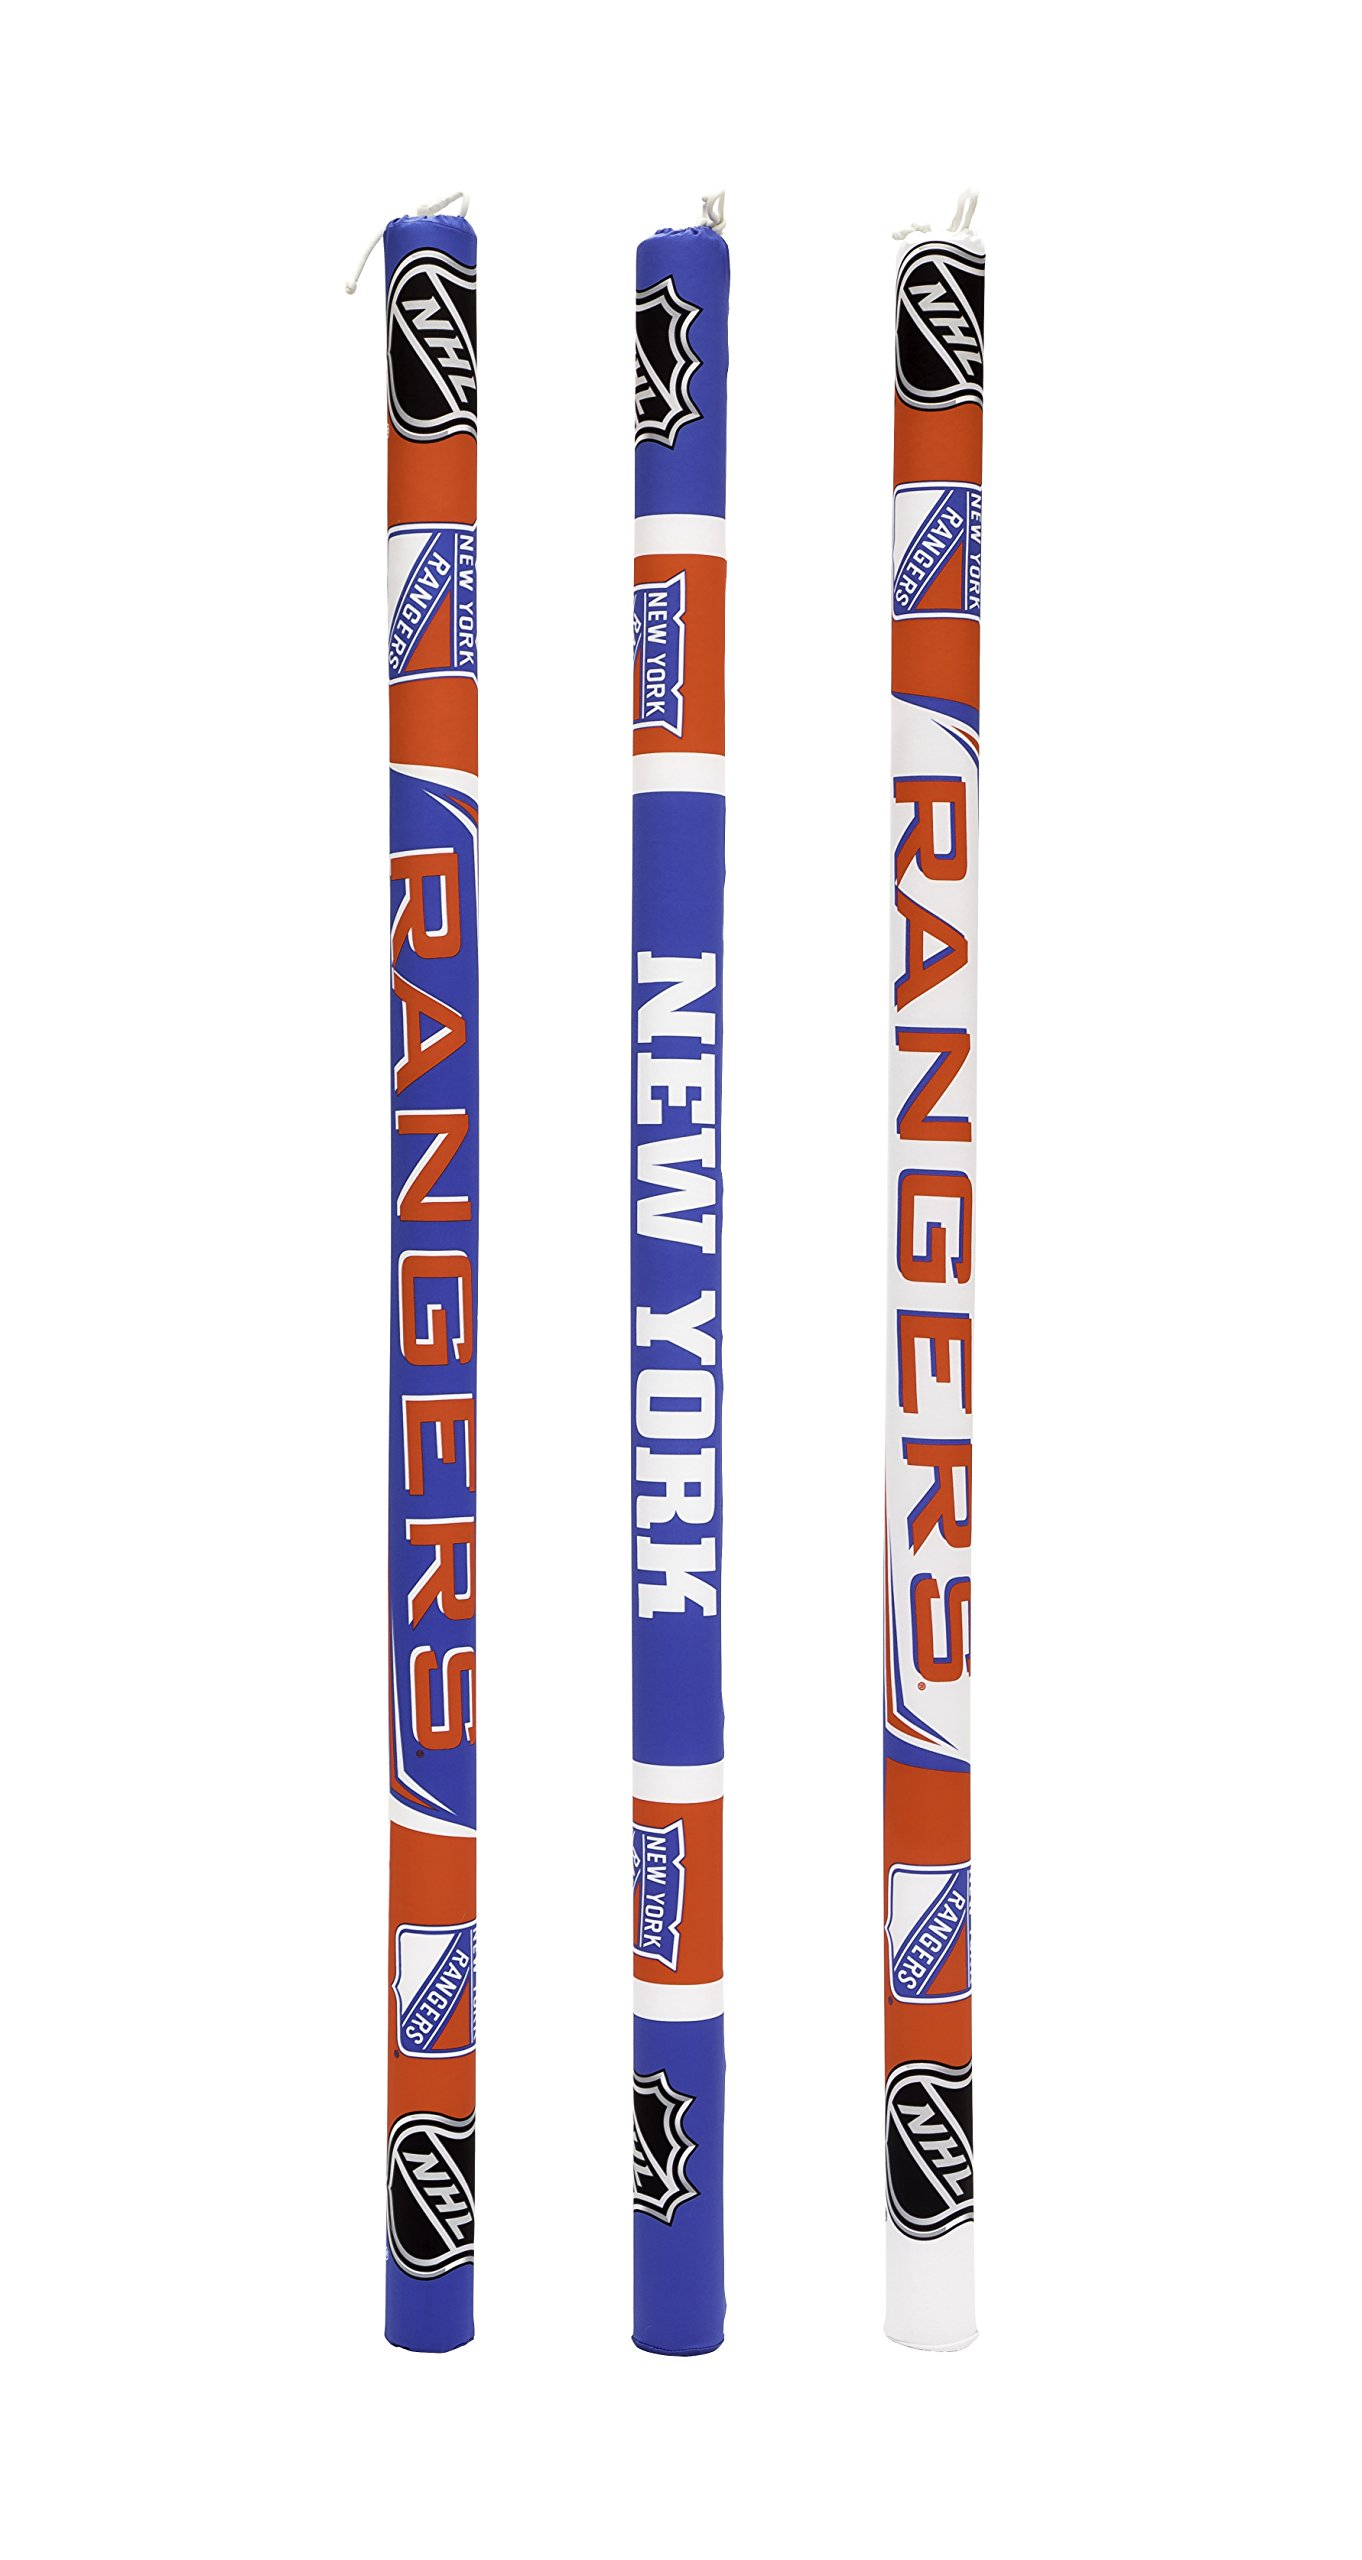 Btswim NHL New York Rangers Pool noodles (Pack of 3) by BTswim